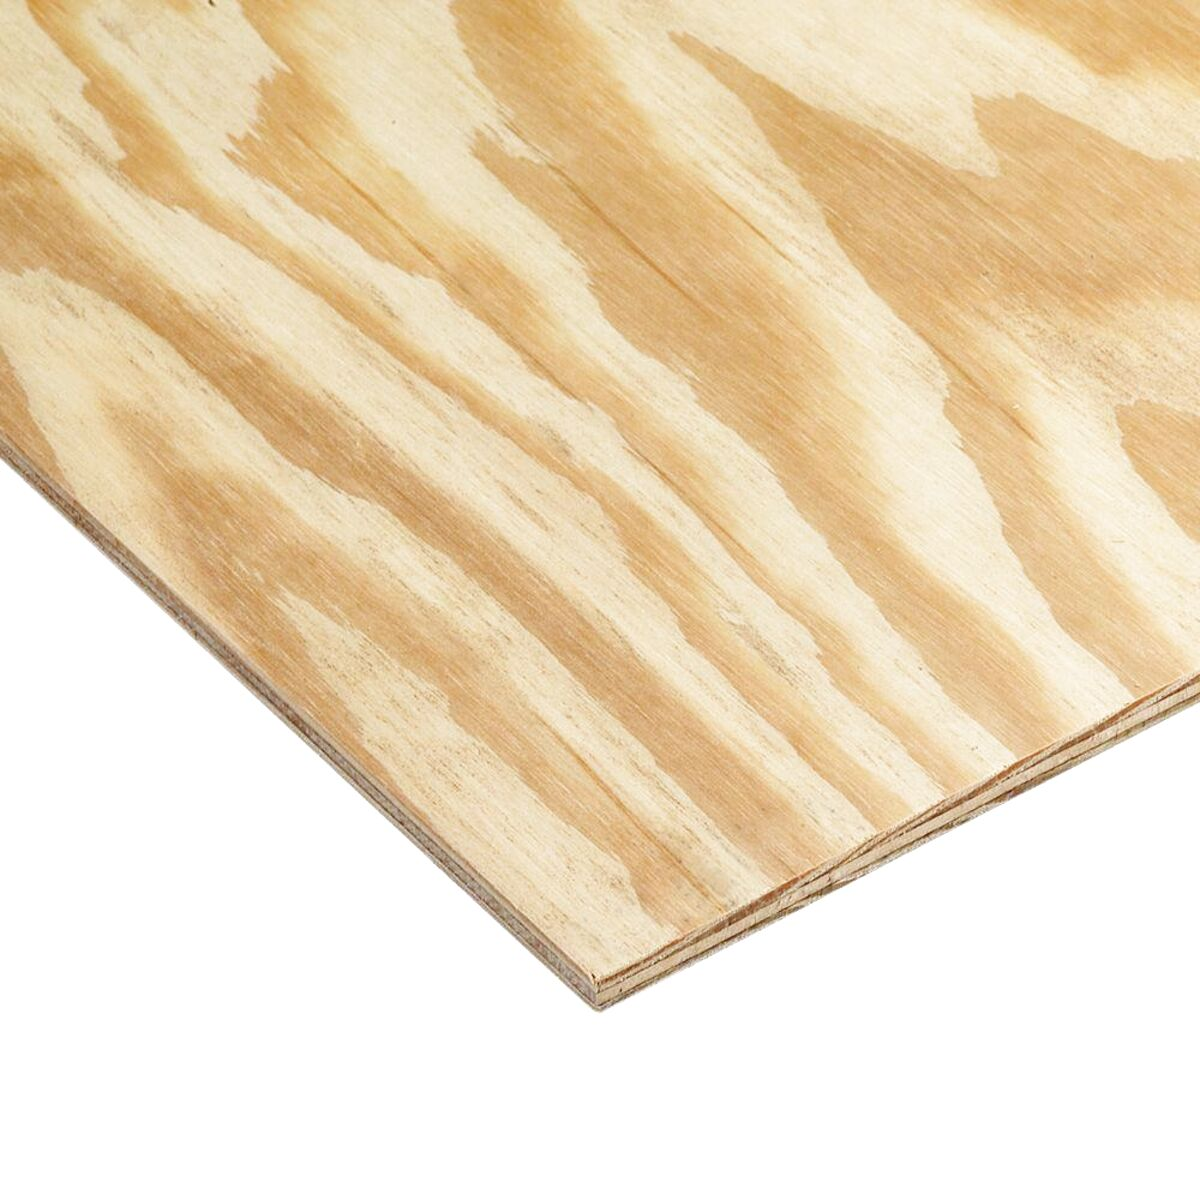 9mm Thick 1220mm x 610mm Plywood Hardwood Exterior Faces Eucalyptus 4 foot x 2 foot